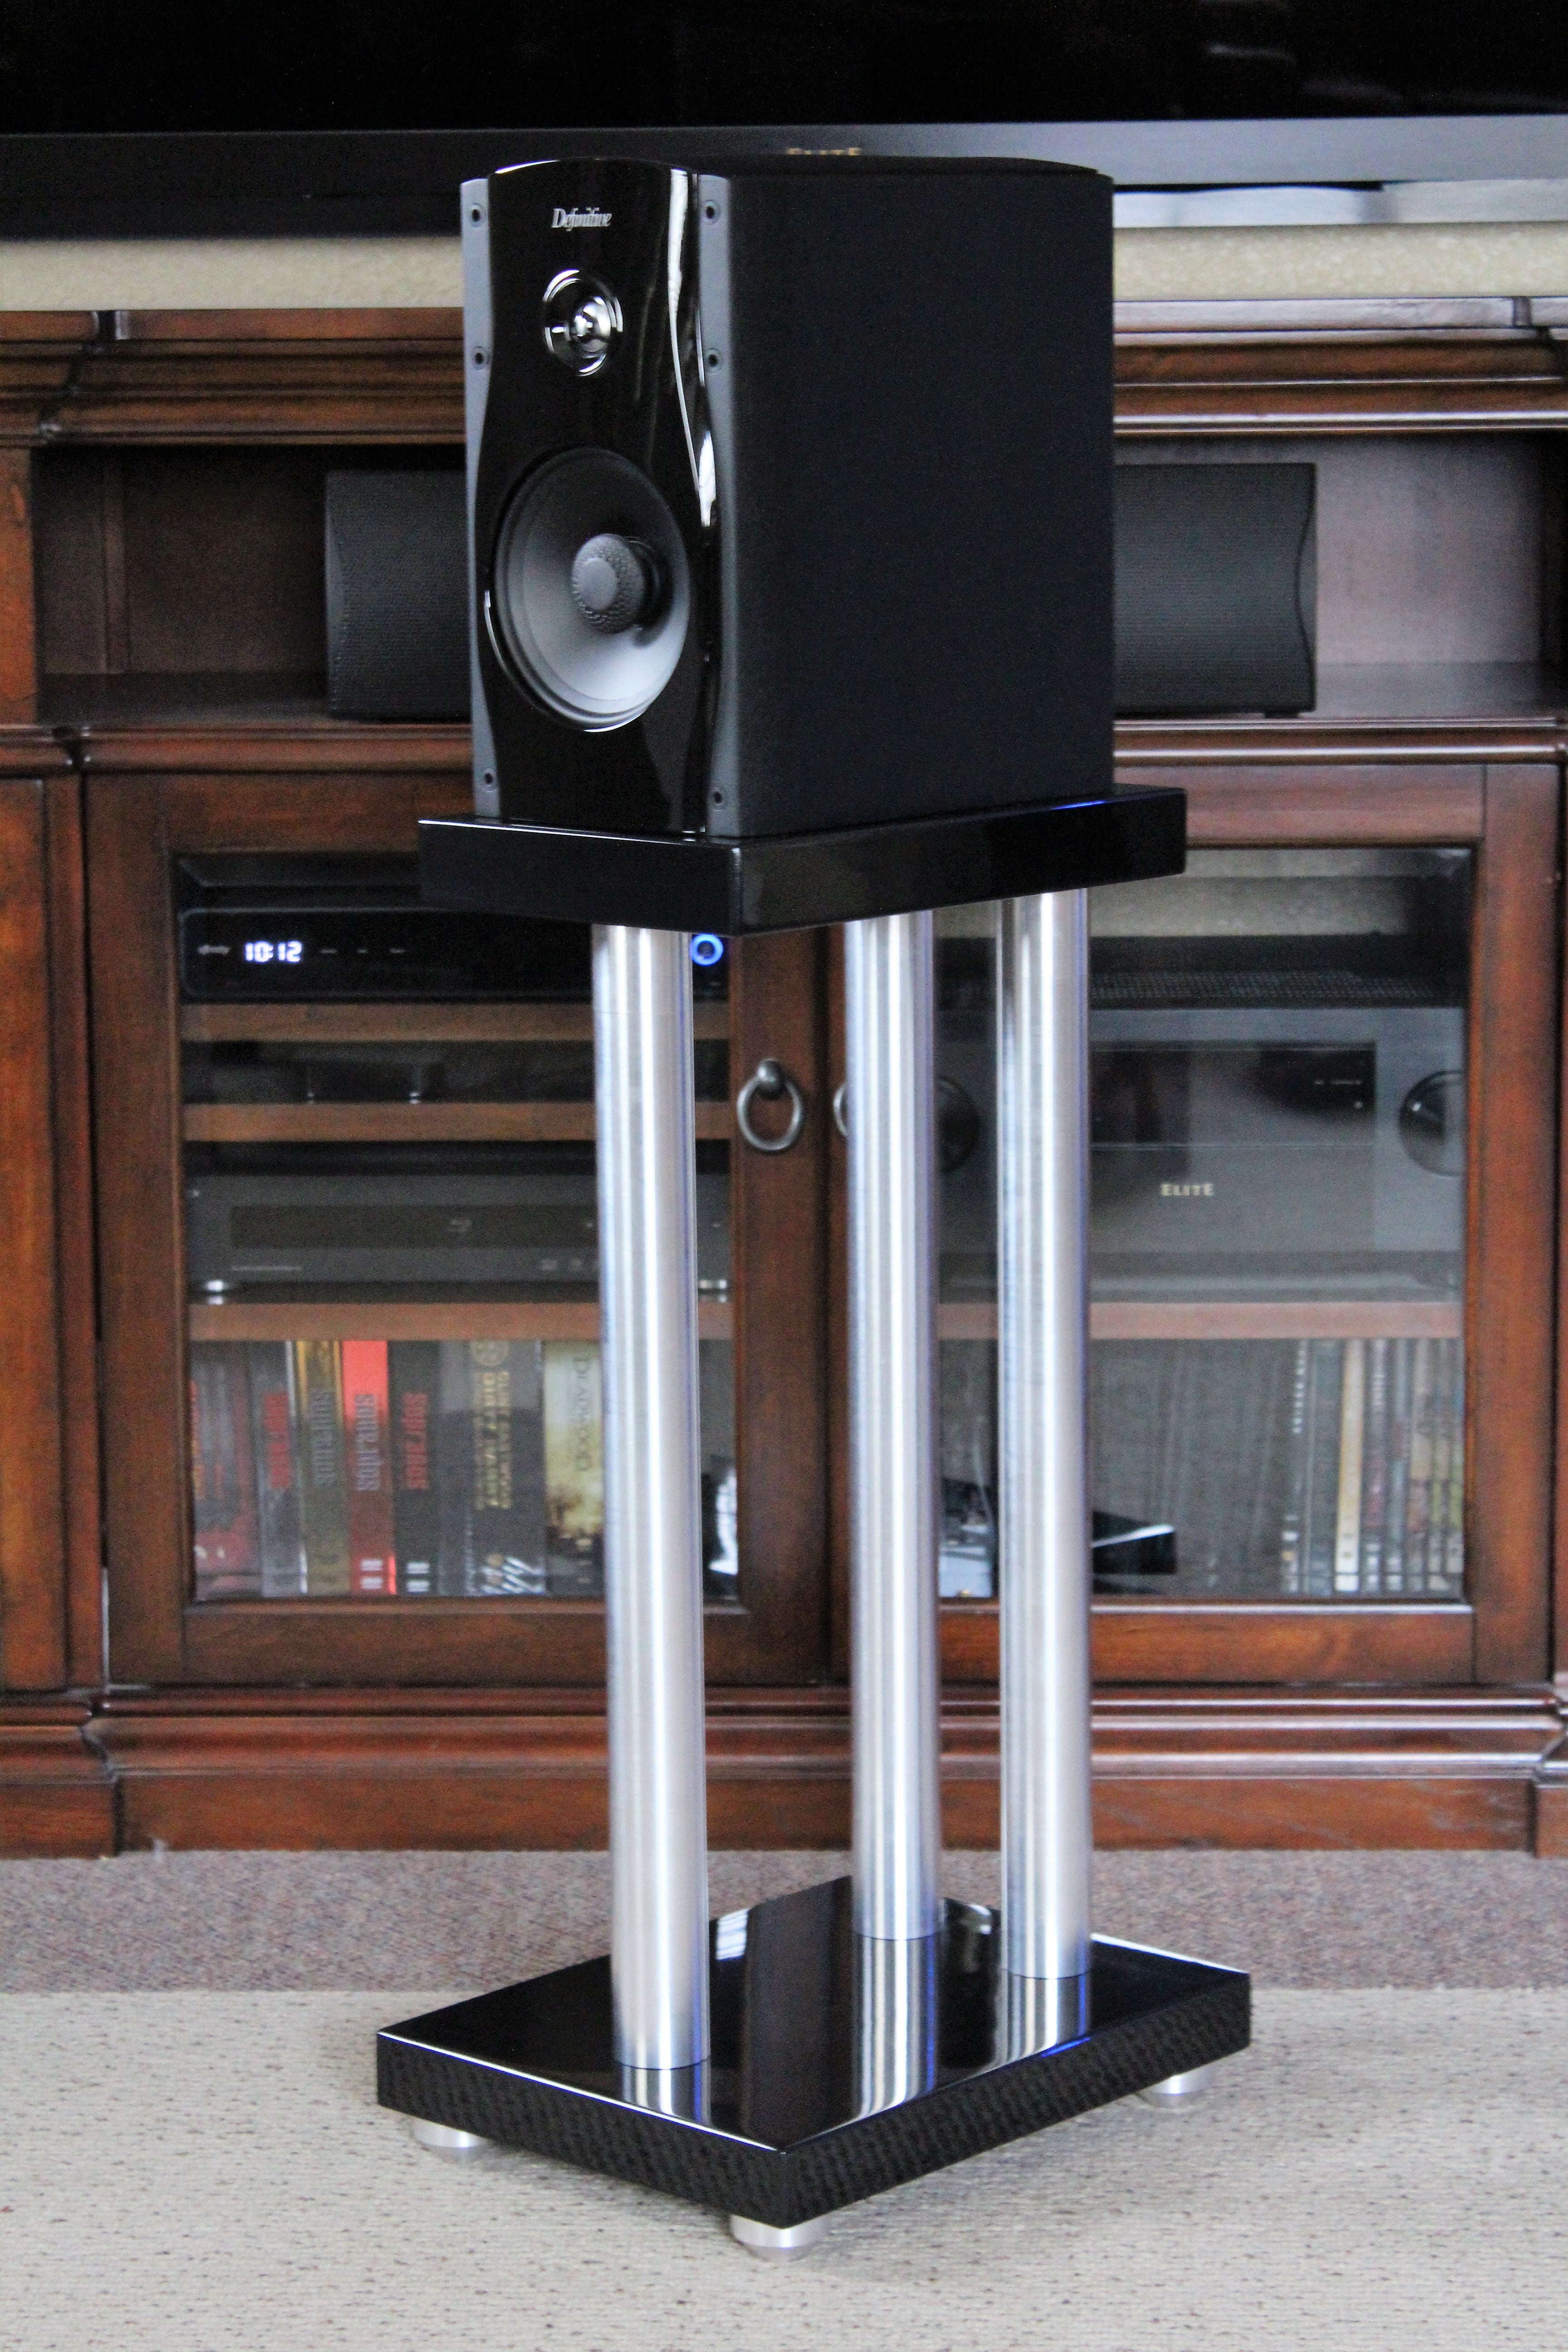 Modern Speaker Stands : 9 Steps (with Pictures) - Instructables